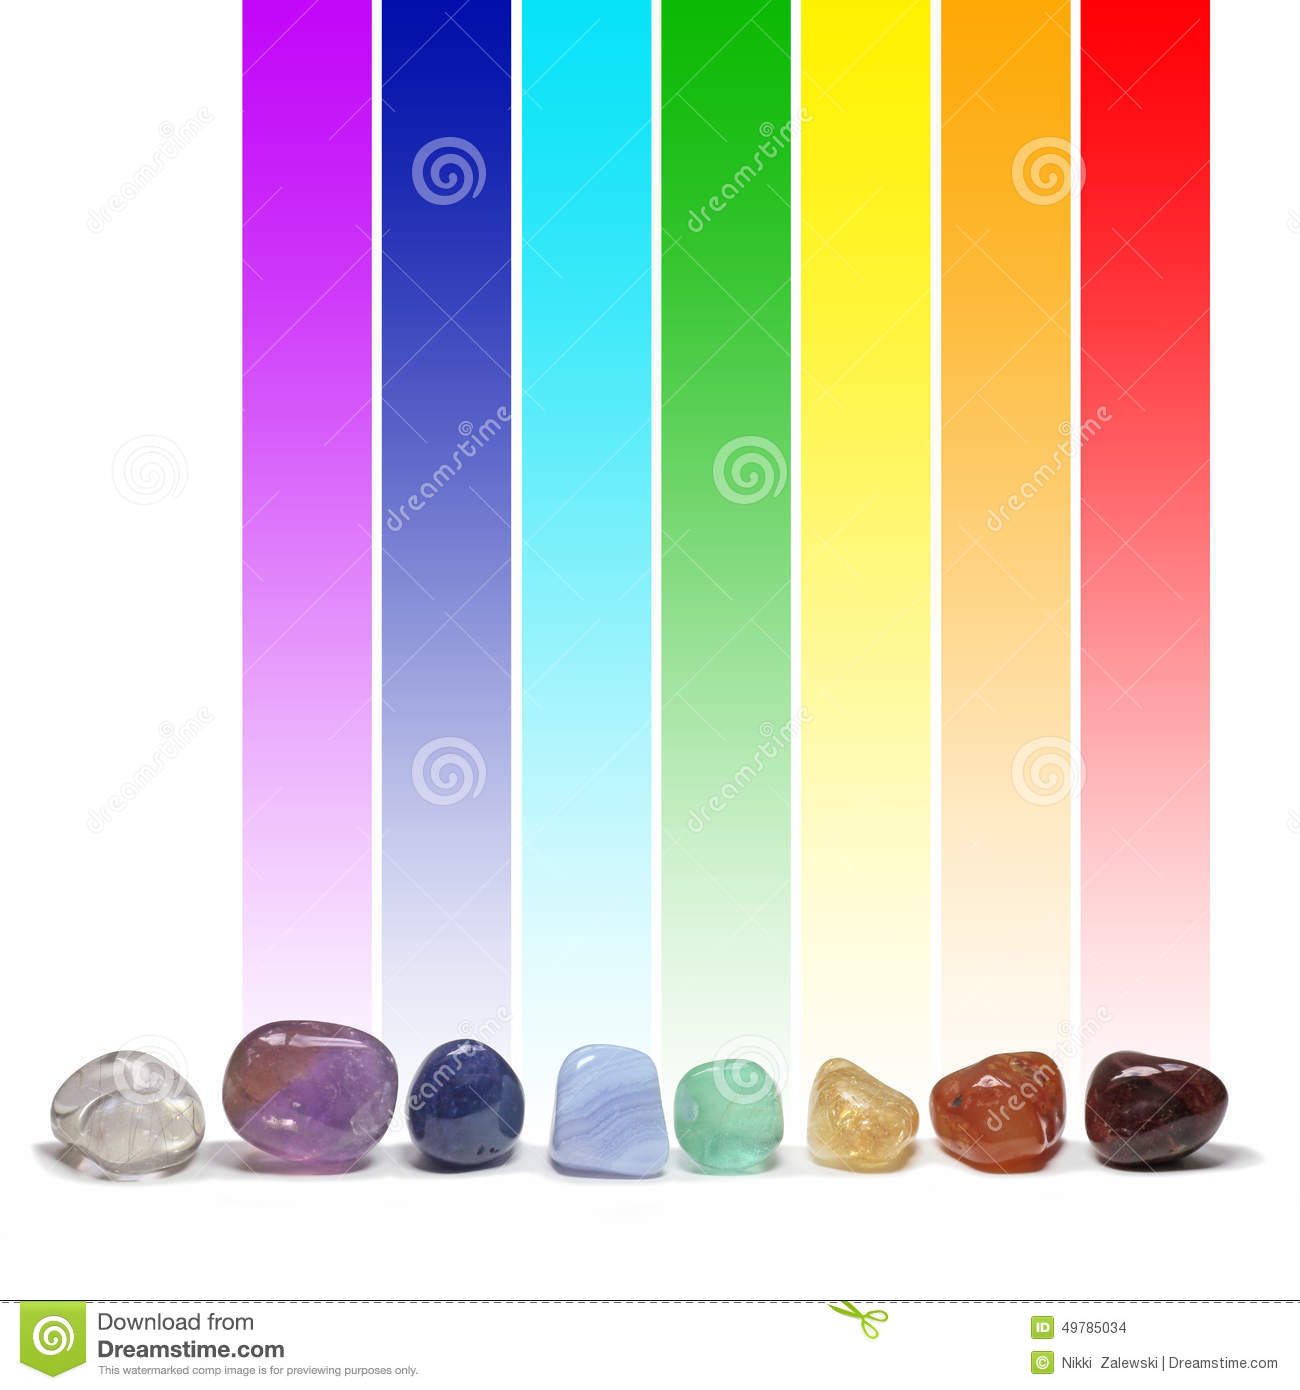 Chakra healing crystals color chart stock illustration chakra healing crystals and their colors stock images geenschuldenfo Images